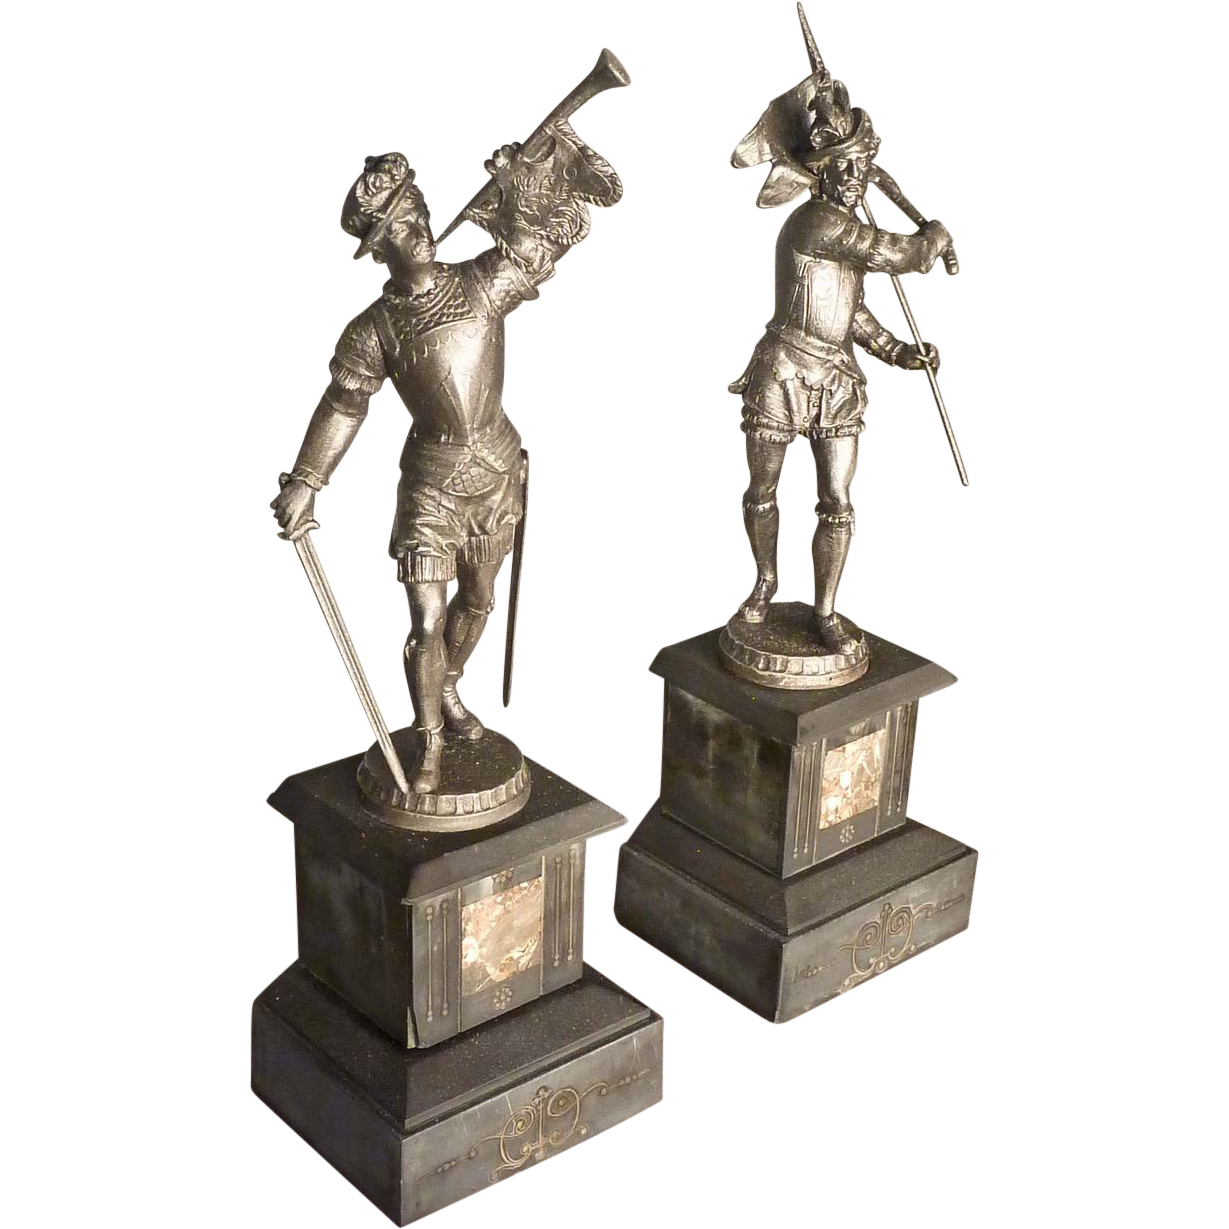 Pair of Marble & Spelter Statues, Garnitures